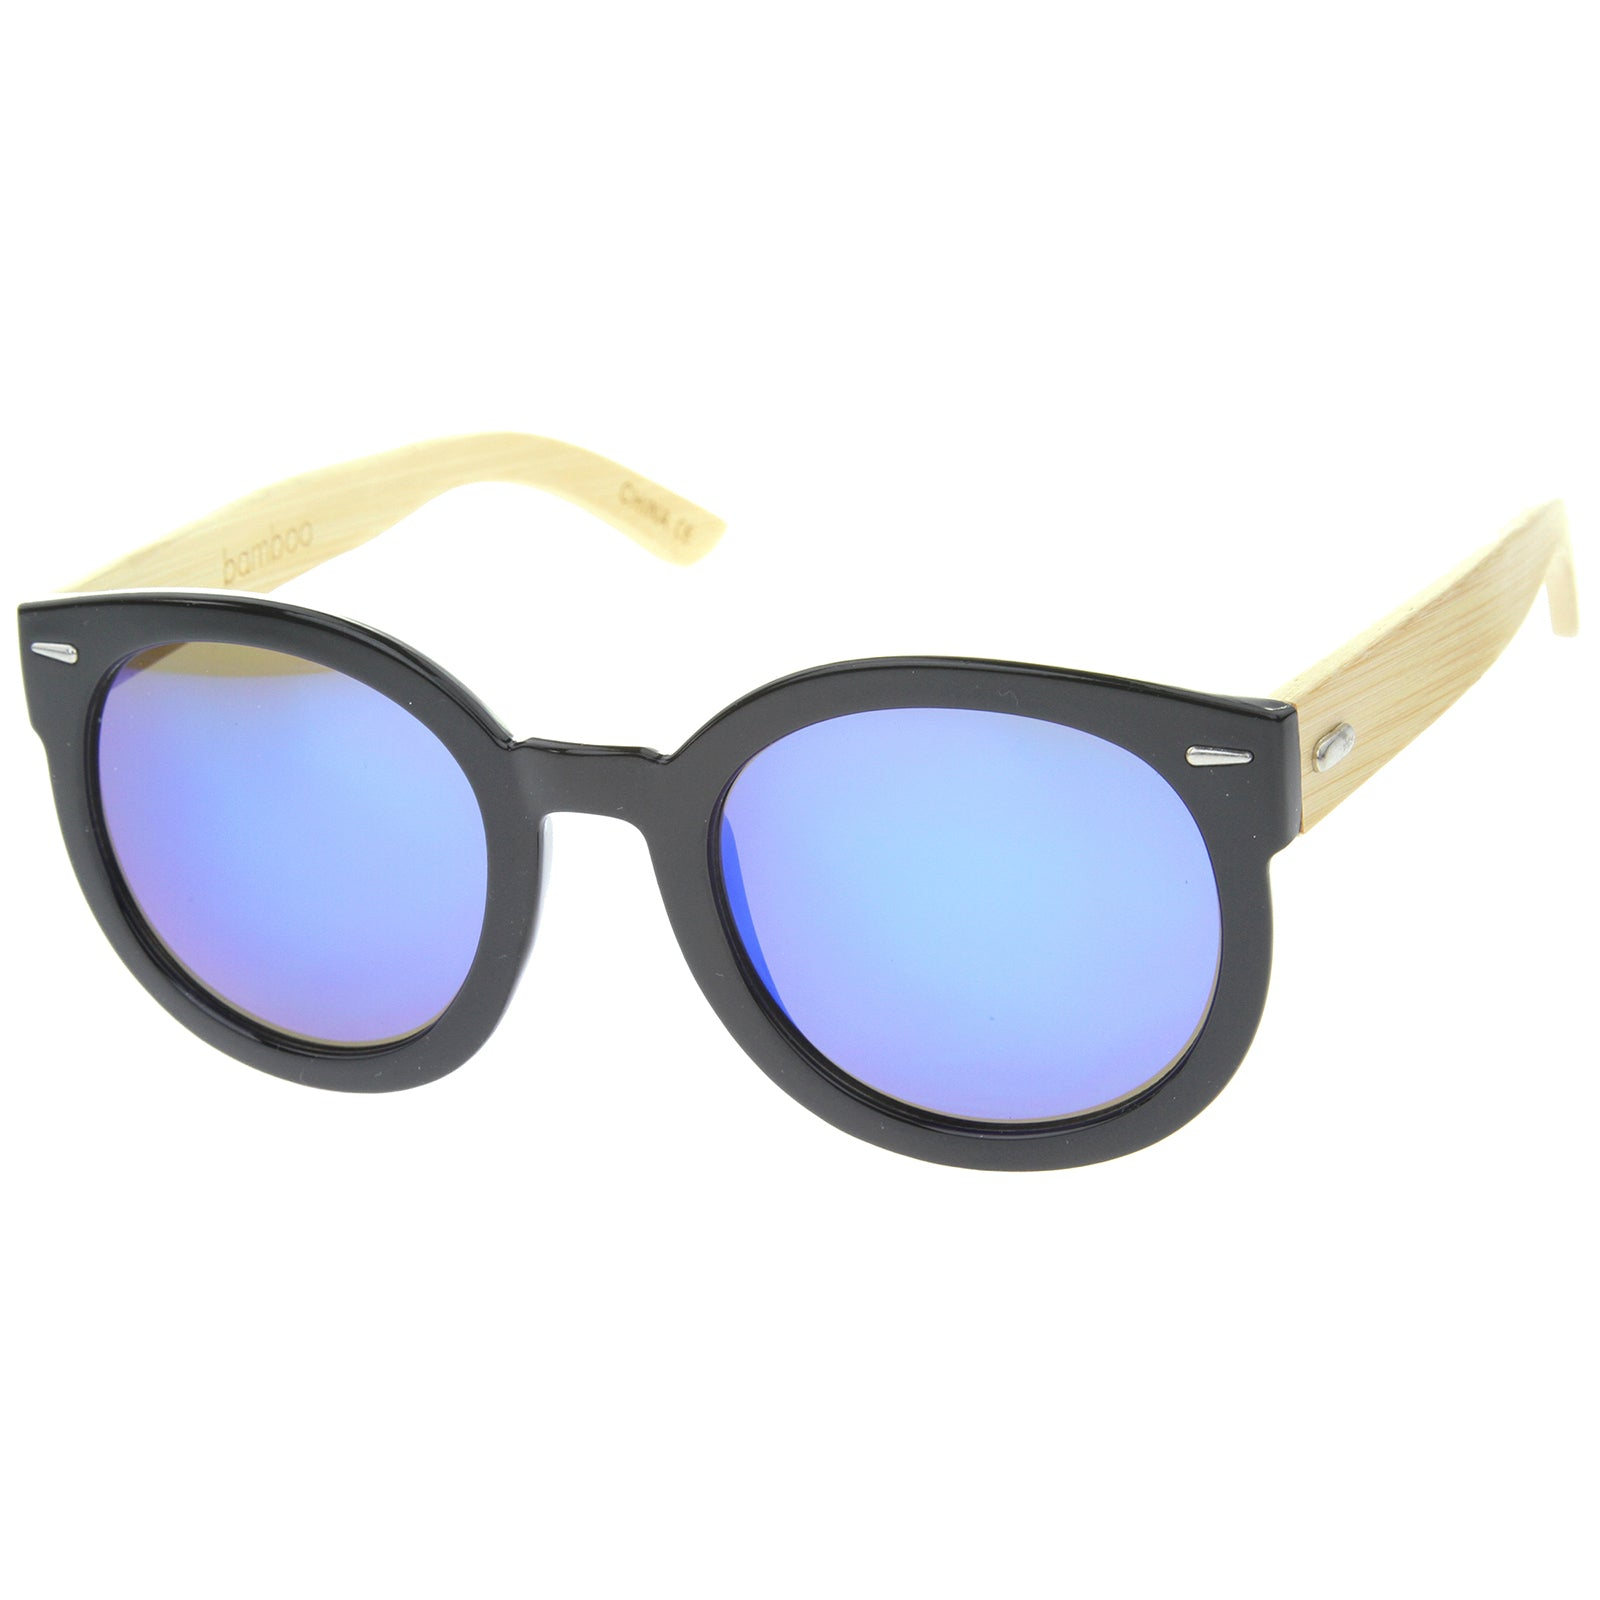 Womens Oversized Sunglasses With UV400 Protected Mirrored Lens - sunglass.la - 2